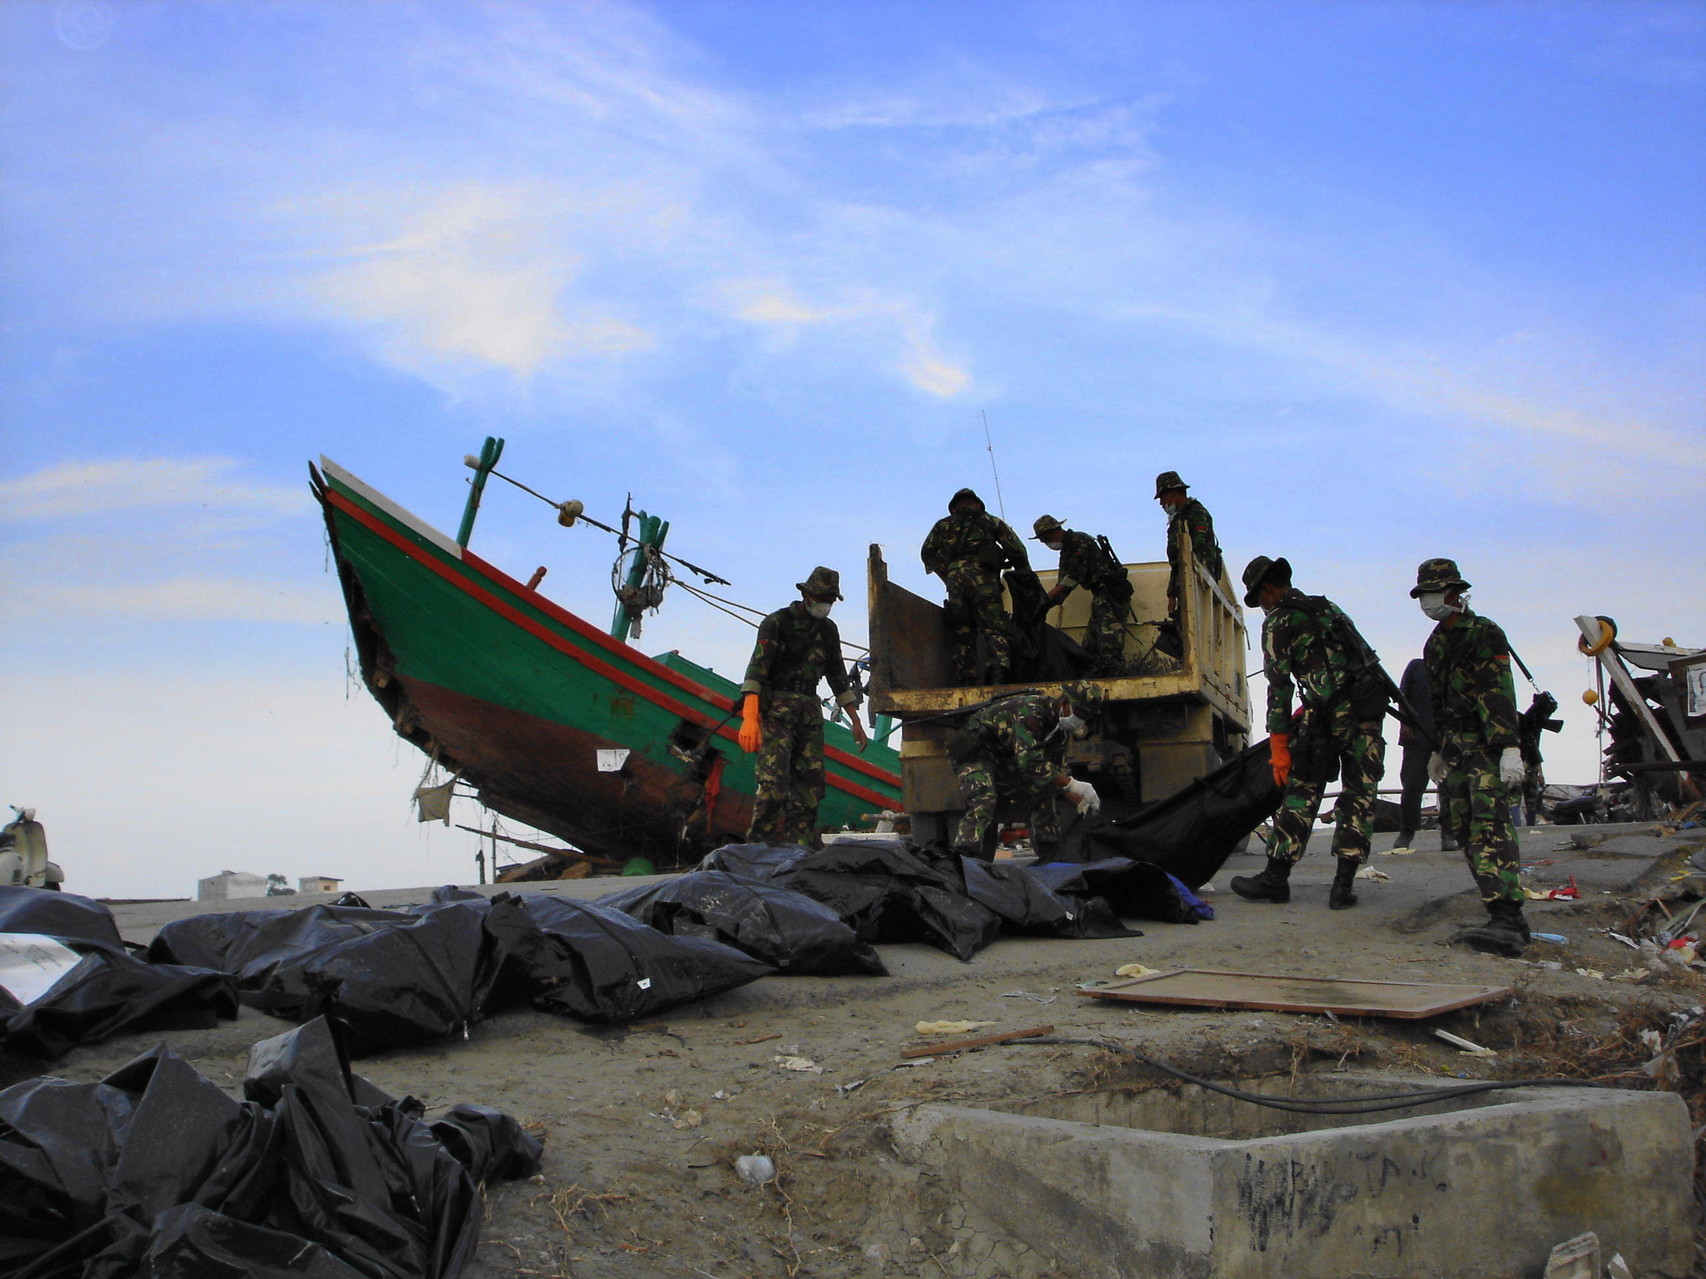 Humanitarian response to the 2004 Indian Ocean earthquake